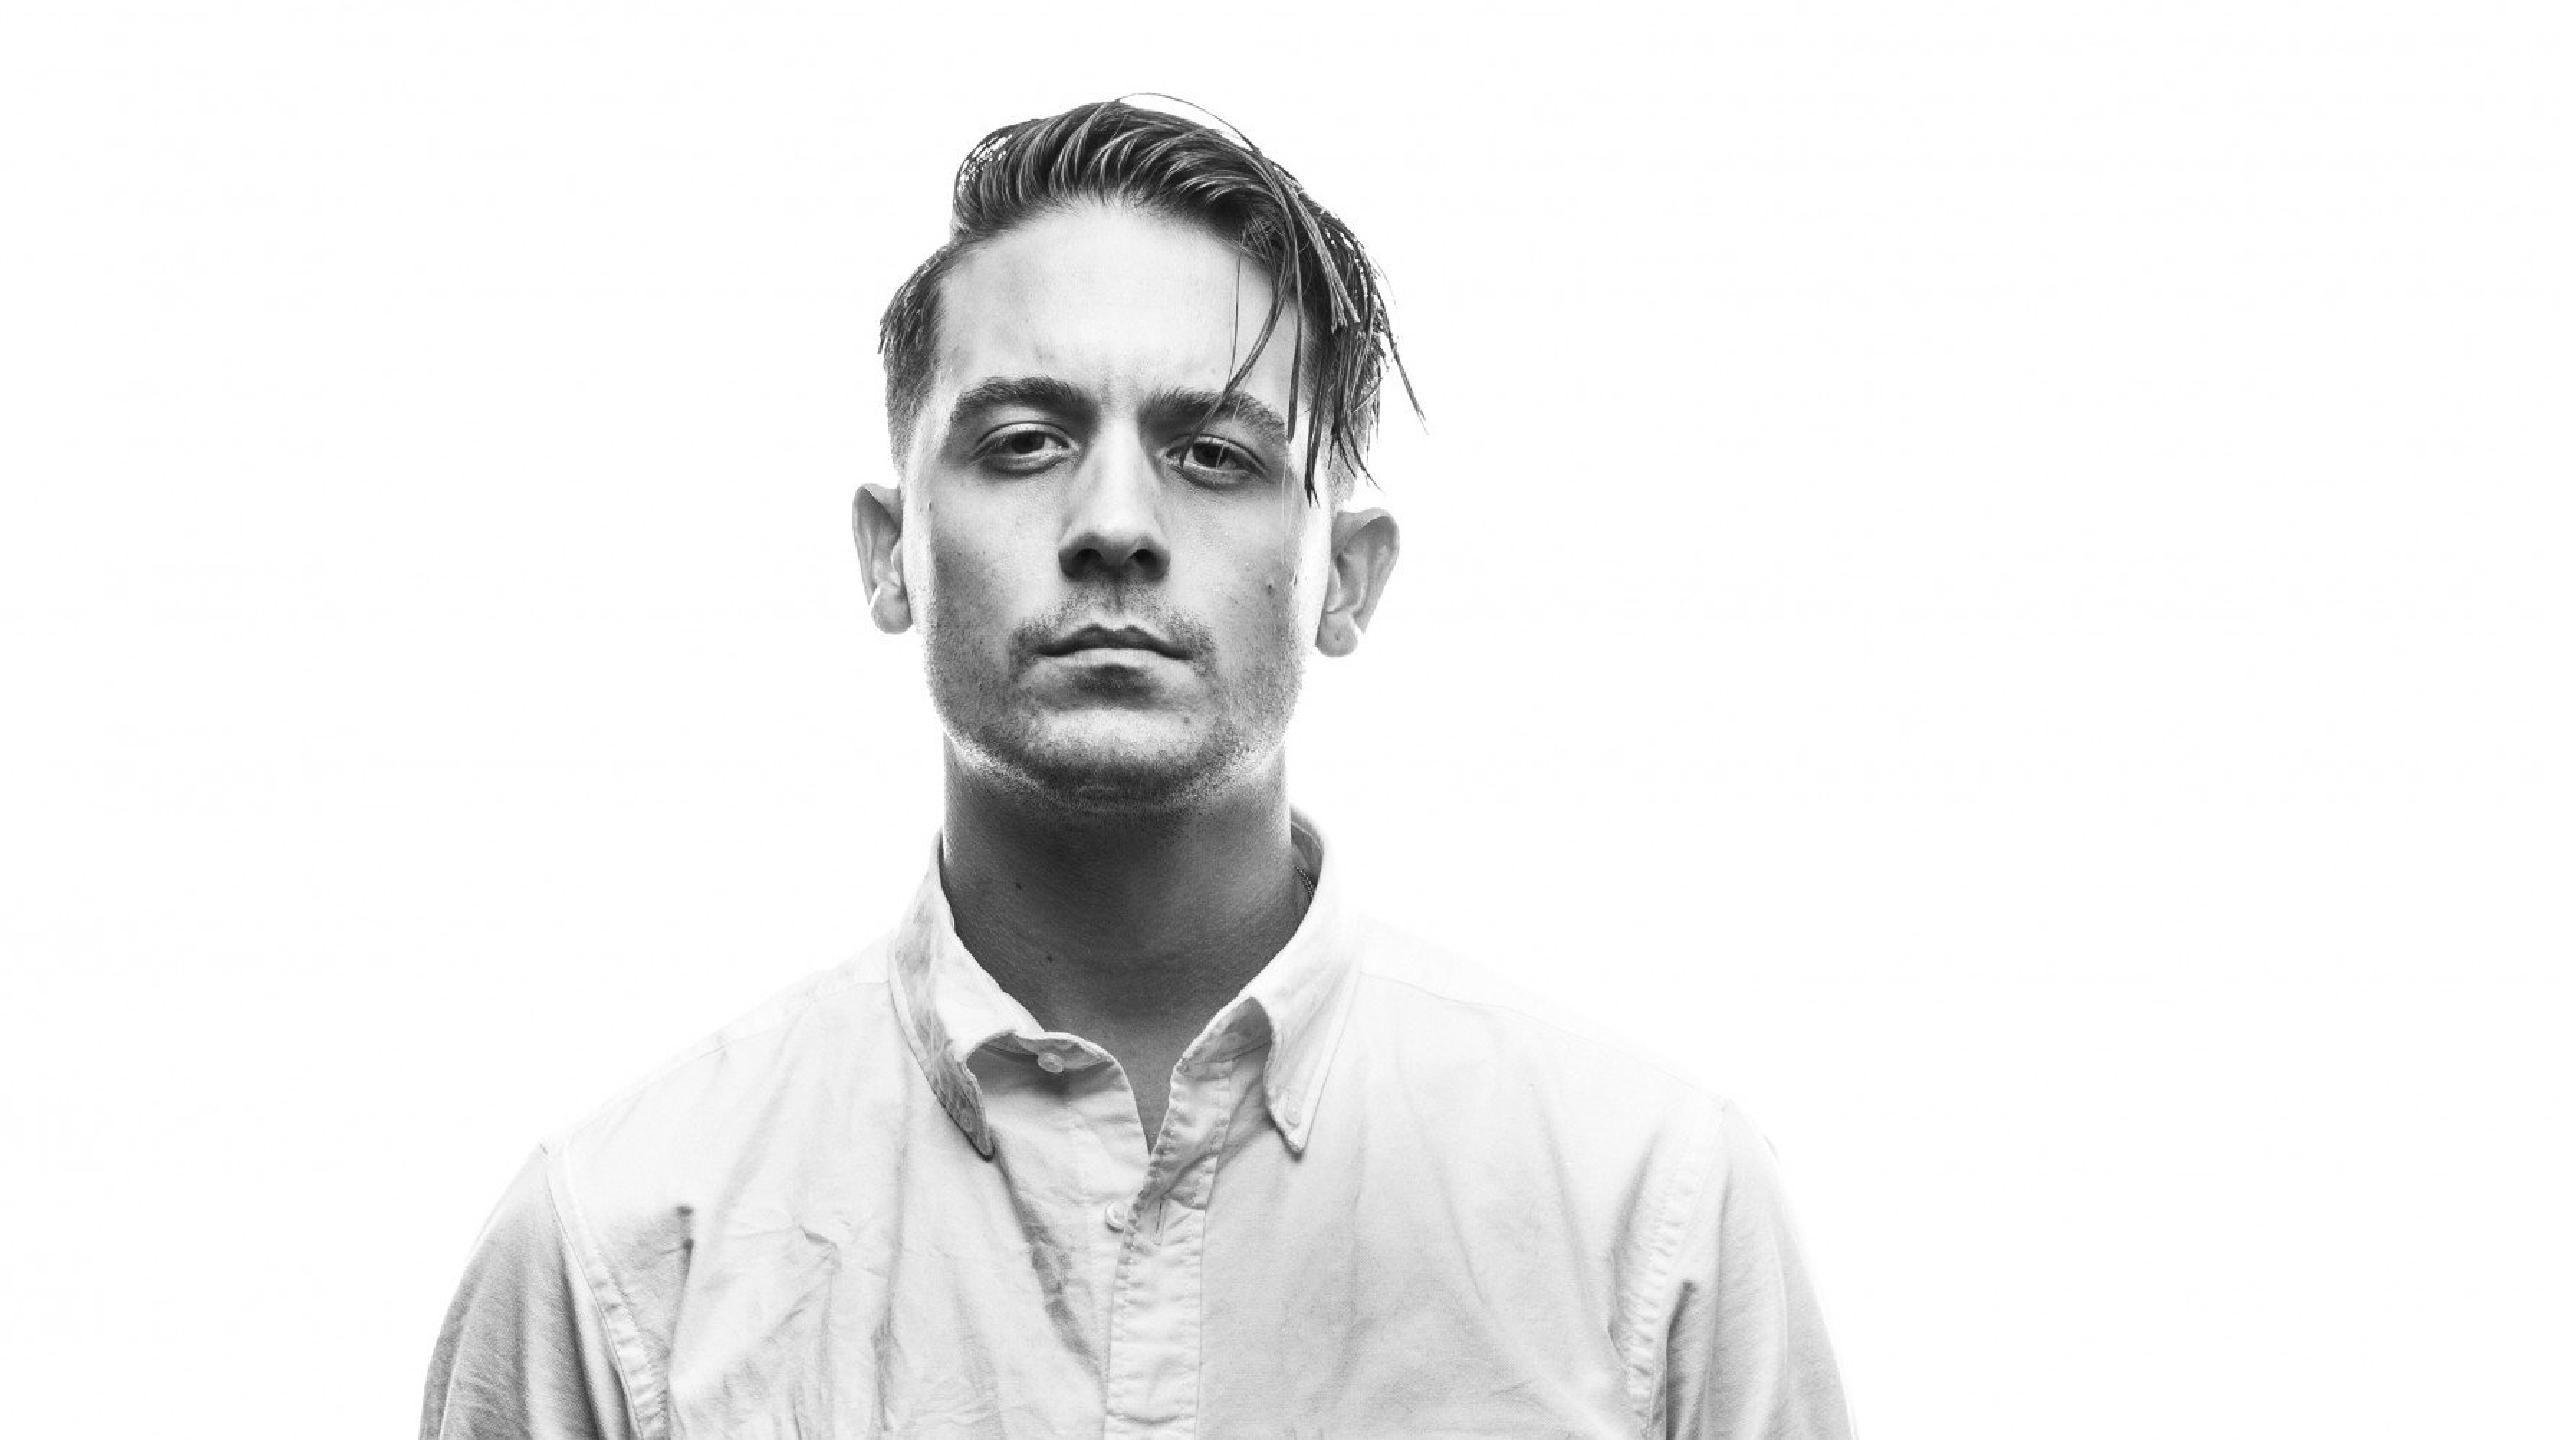 G Eazy Tour 2020 G Eazy tour dates 2019 2020. G Eazy tickets and concerts | Wegow